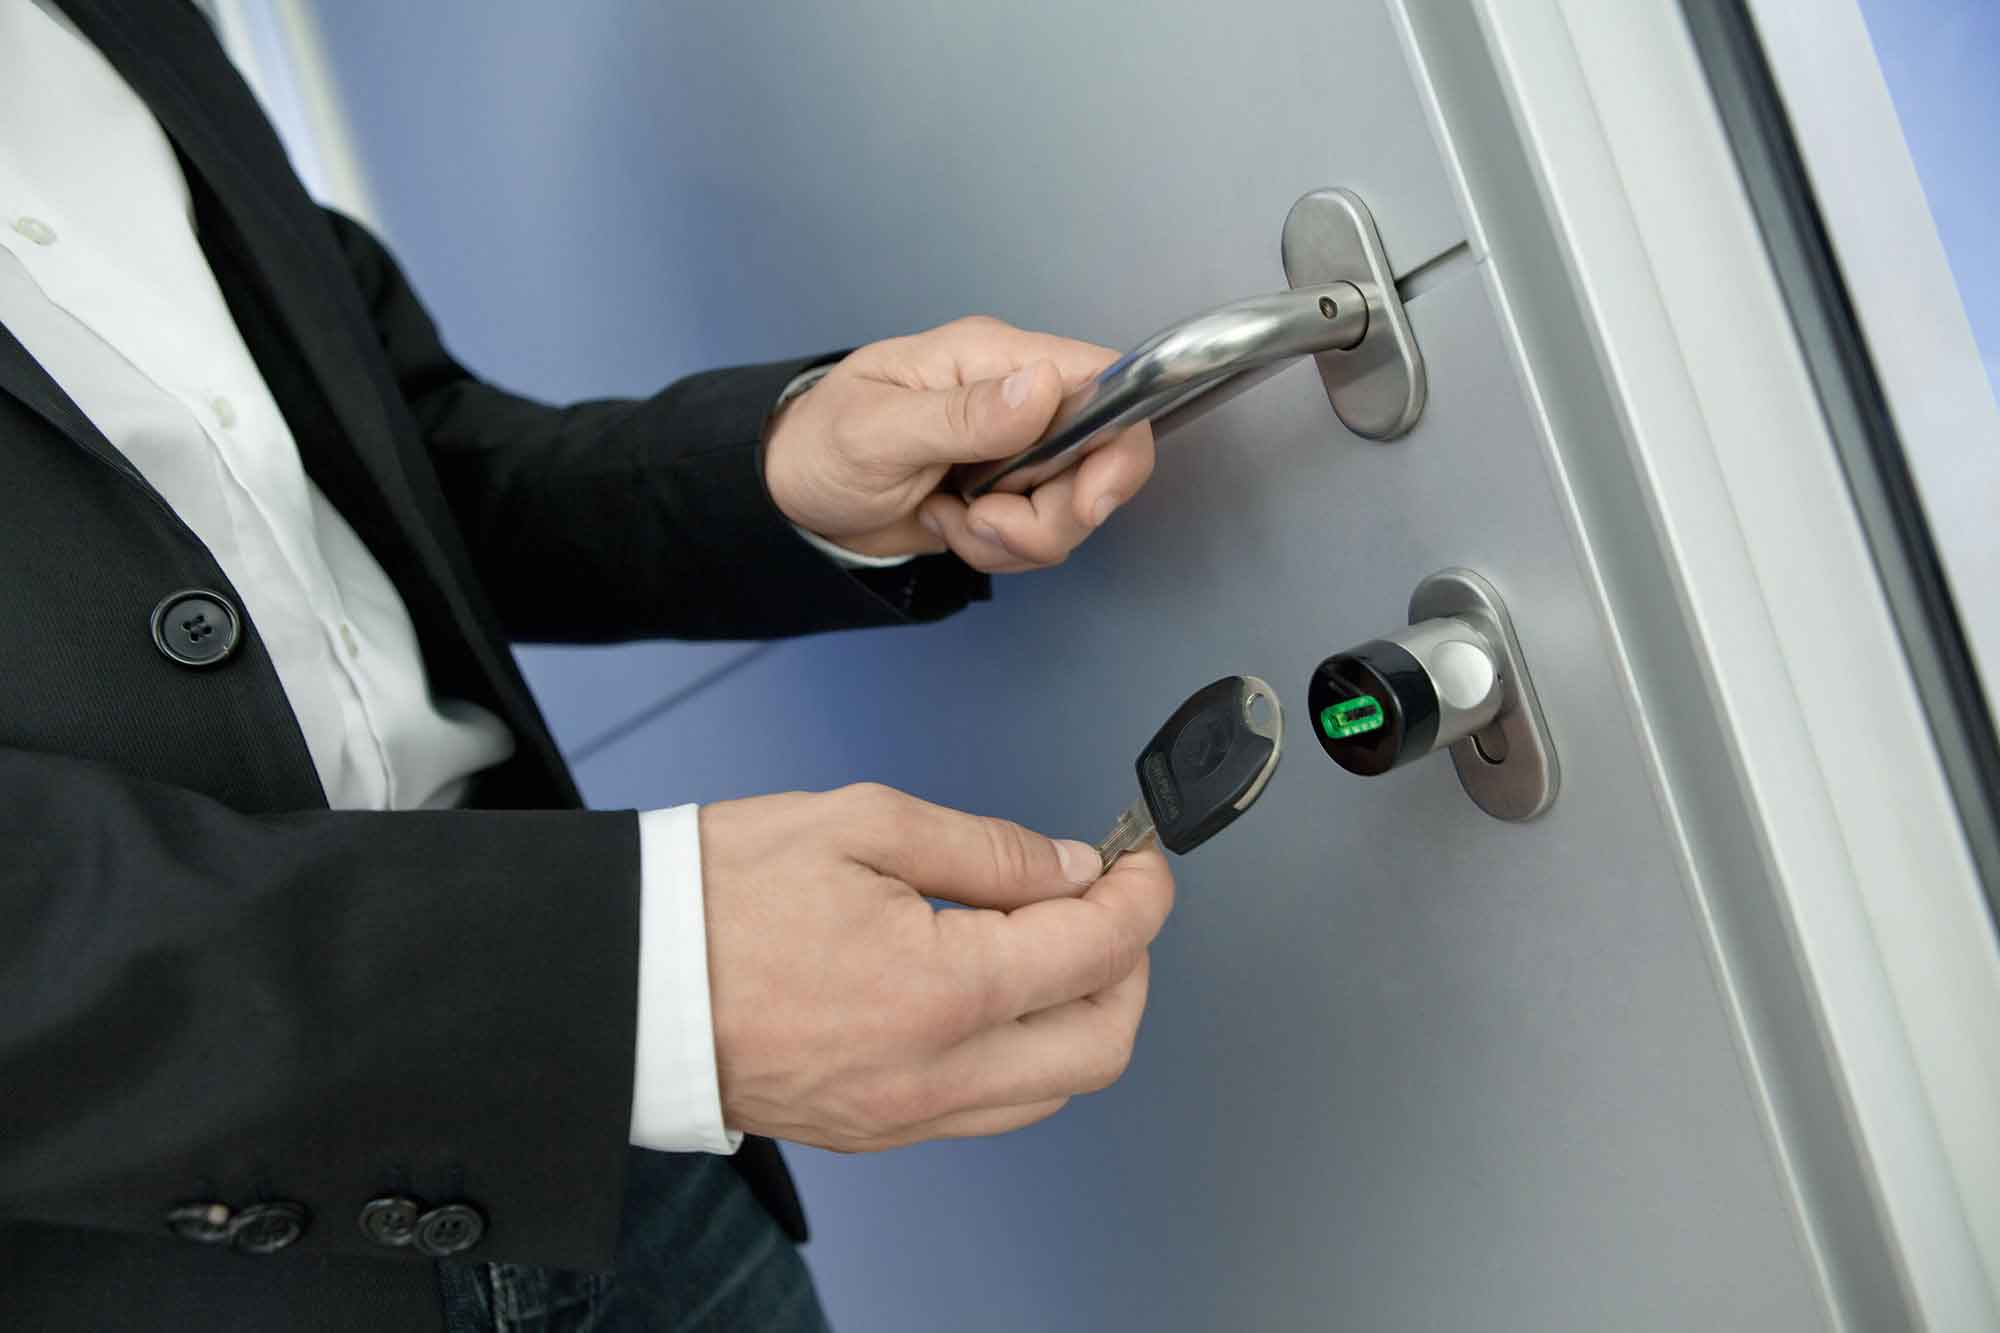 abus-solutions-securite-controle-access